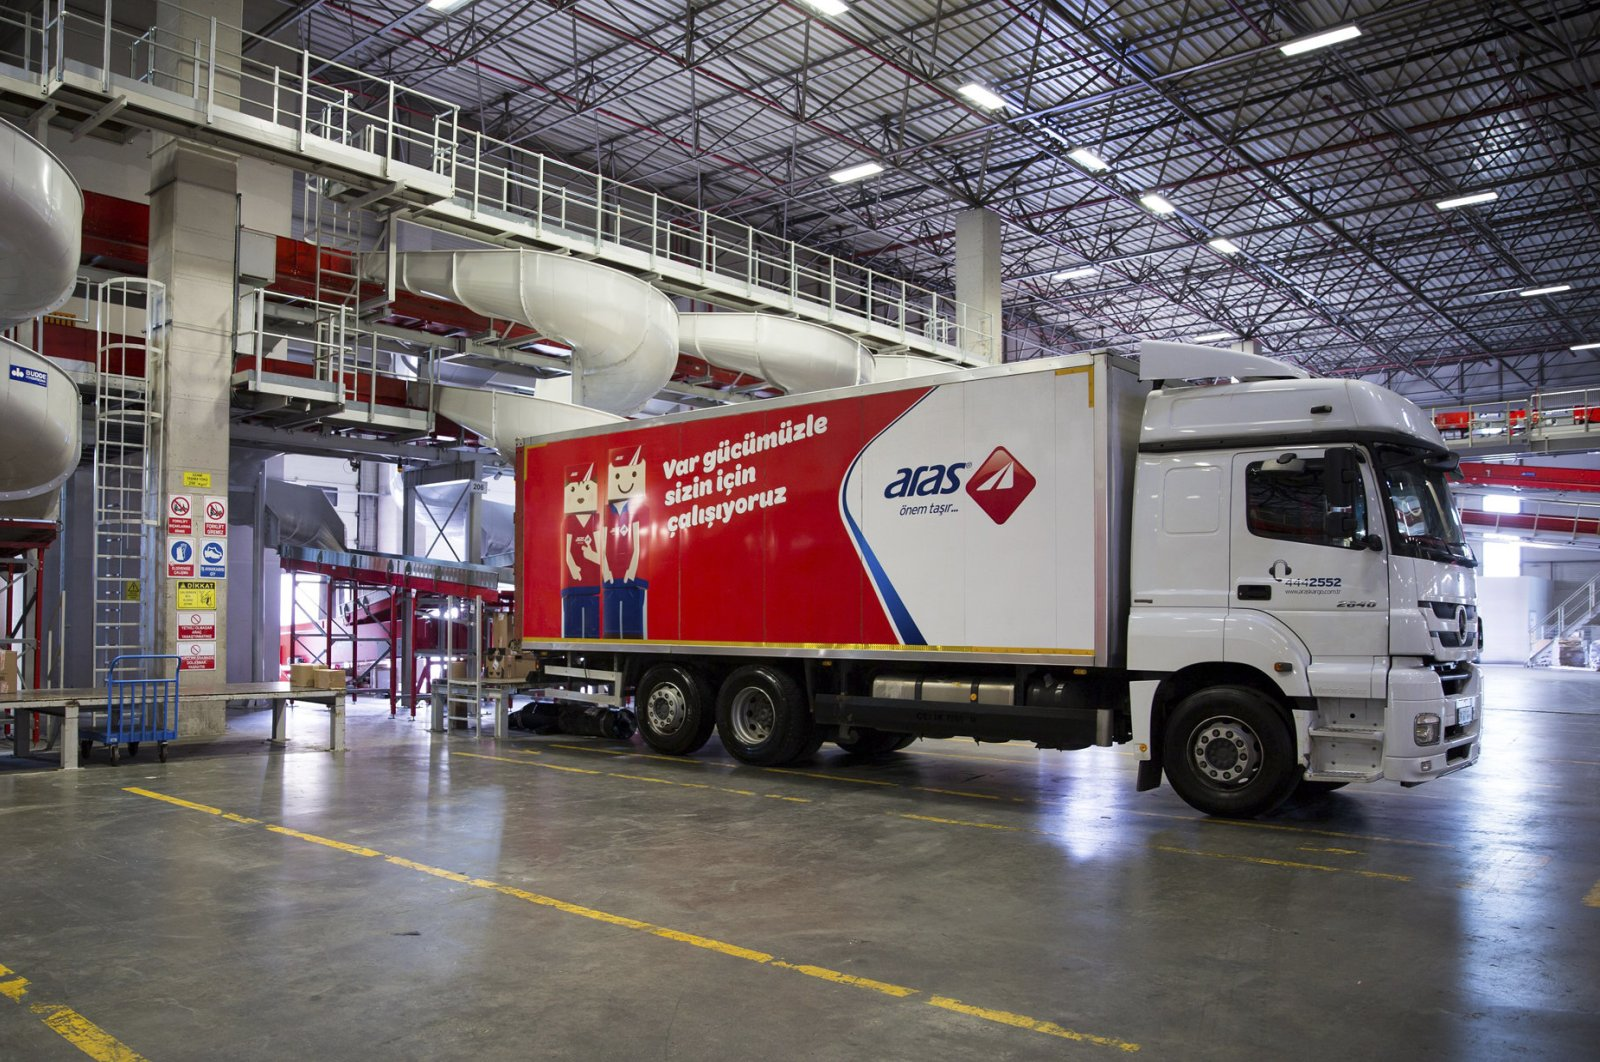 An Aras Kargo truck is seen at the company's Ikiteli Transfer Center in Istanbul's Başakşehir district in this undated file photo.